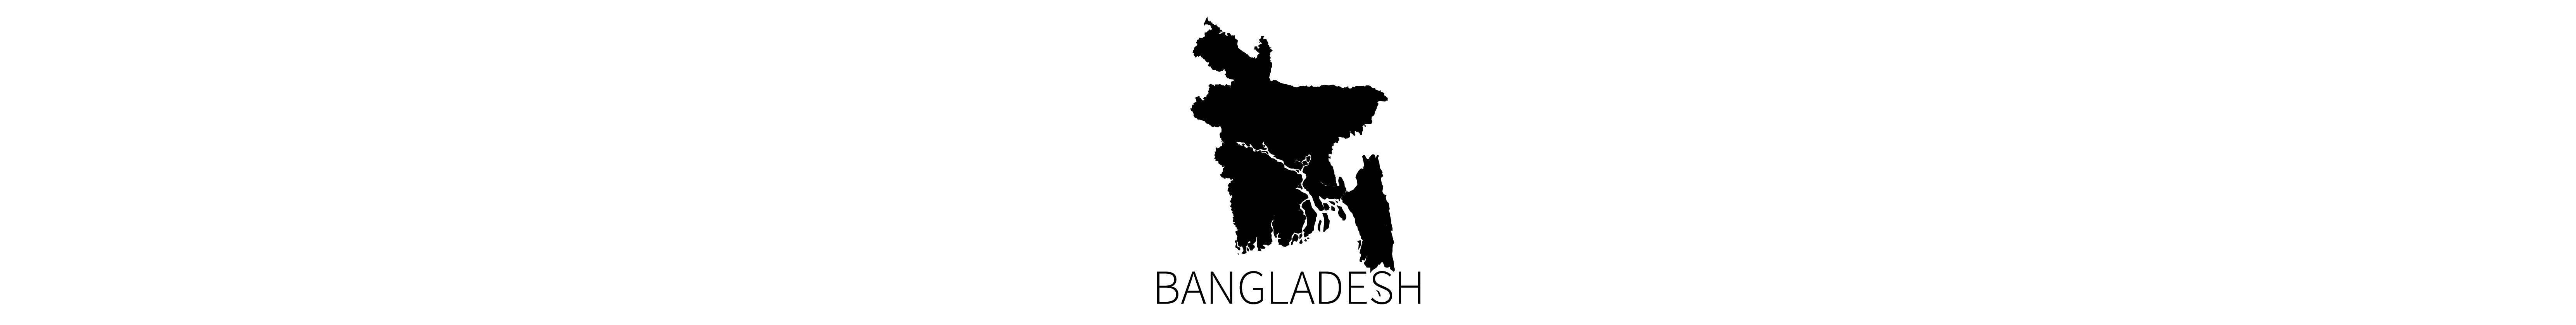 This image contains the black map silhouette of the country of Bangladesh with identifying all-caps text below.